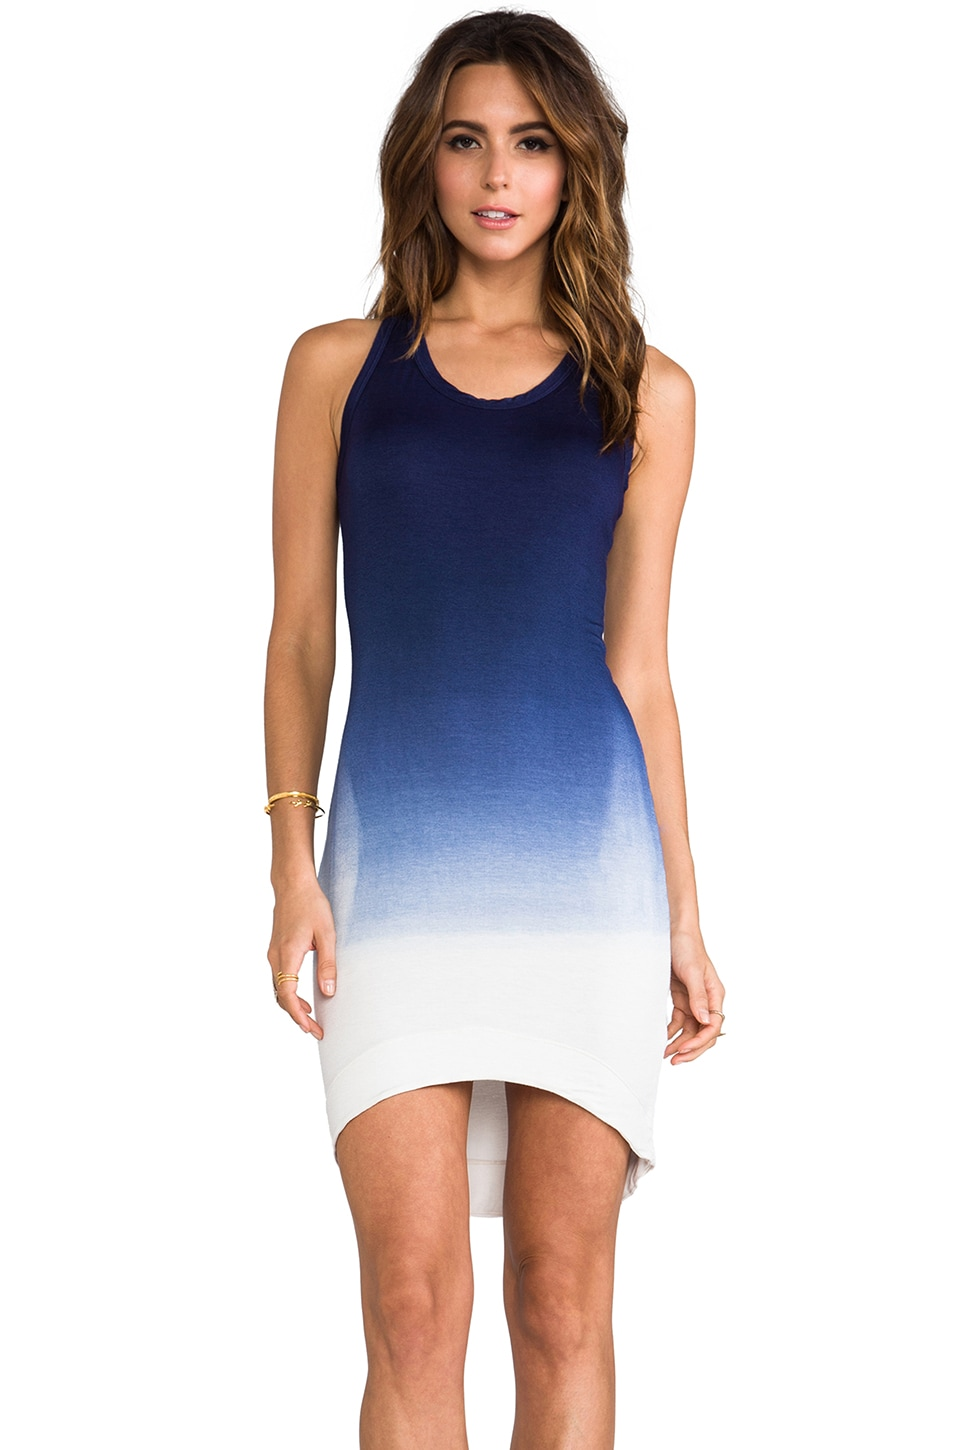 Saint Grace Saint Jo Hi-Lo Dress in Sailor Ombre